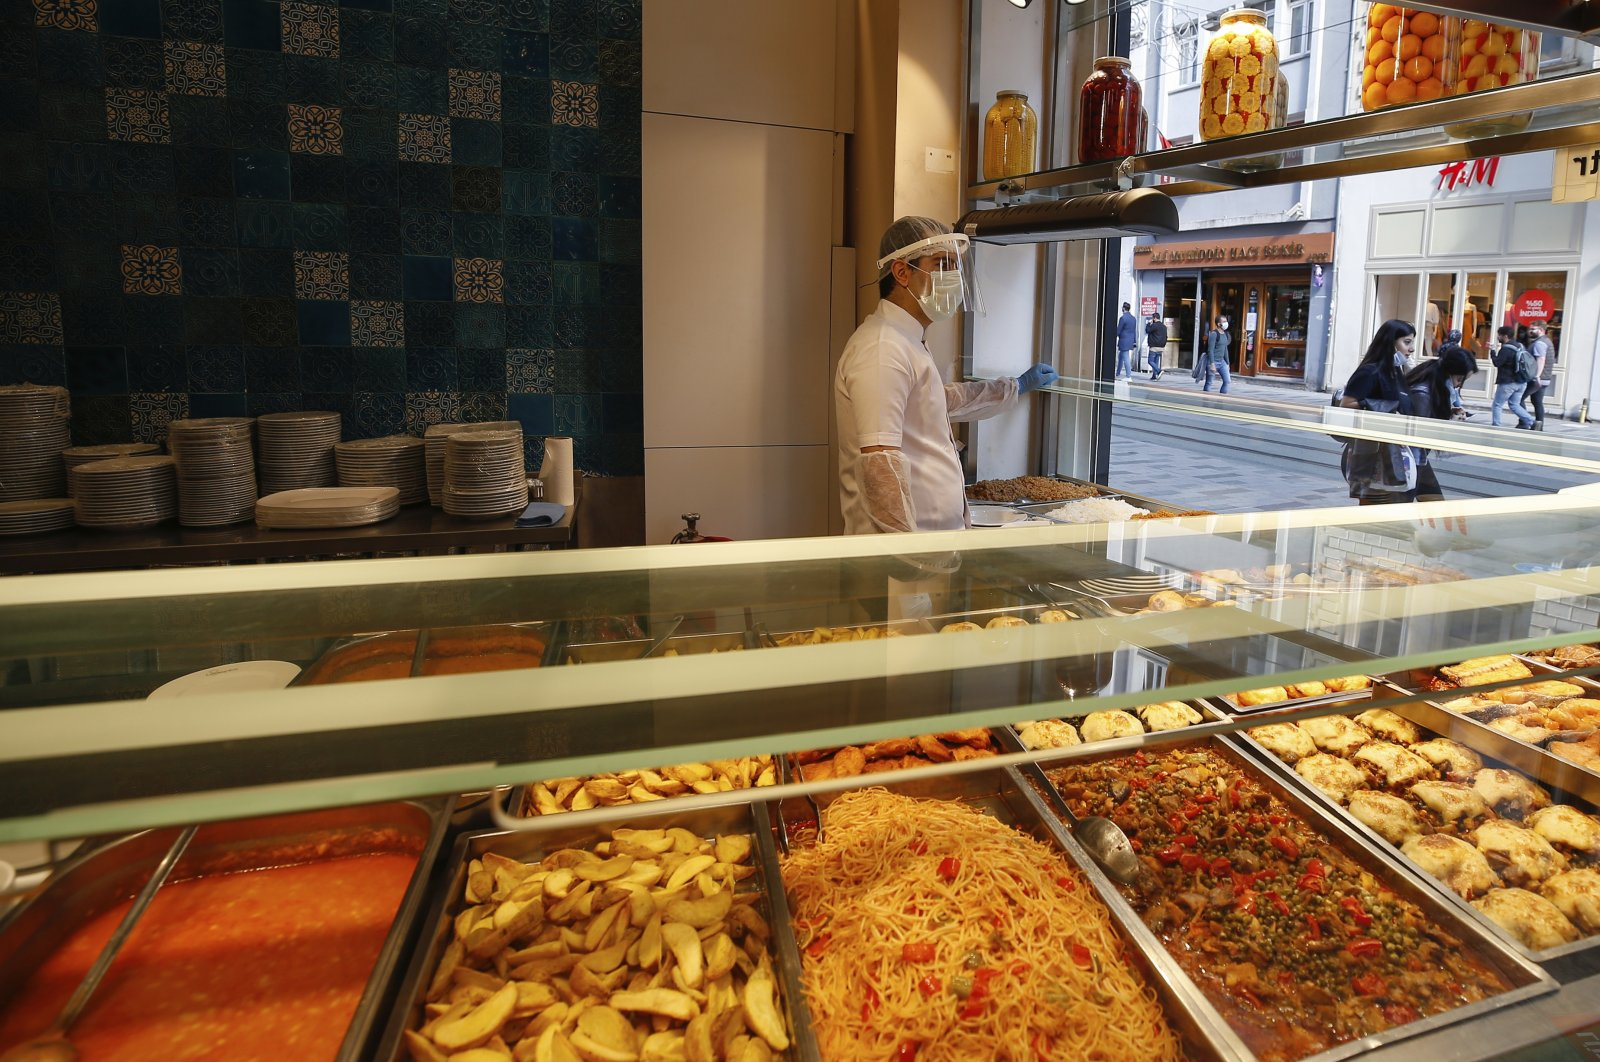 A restaurant worker waits for customers at a restaurant on Istiklal Avenue, the main shopping street in Istanbul, Turkey, June 1, 2020. (AP Photo)